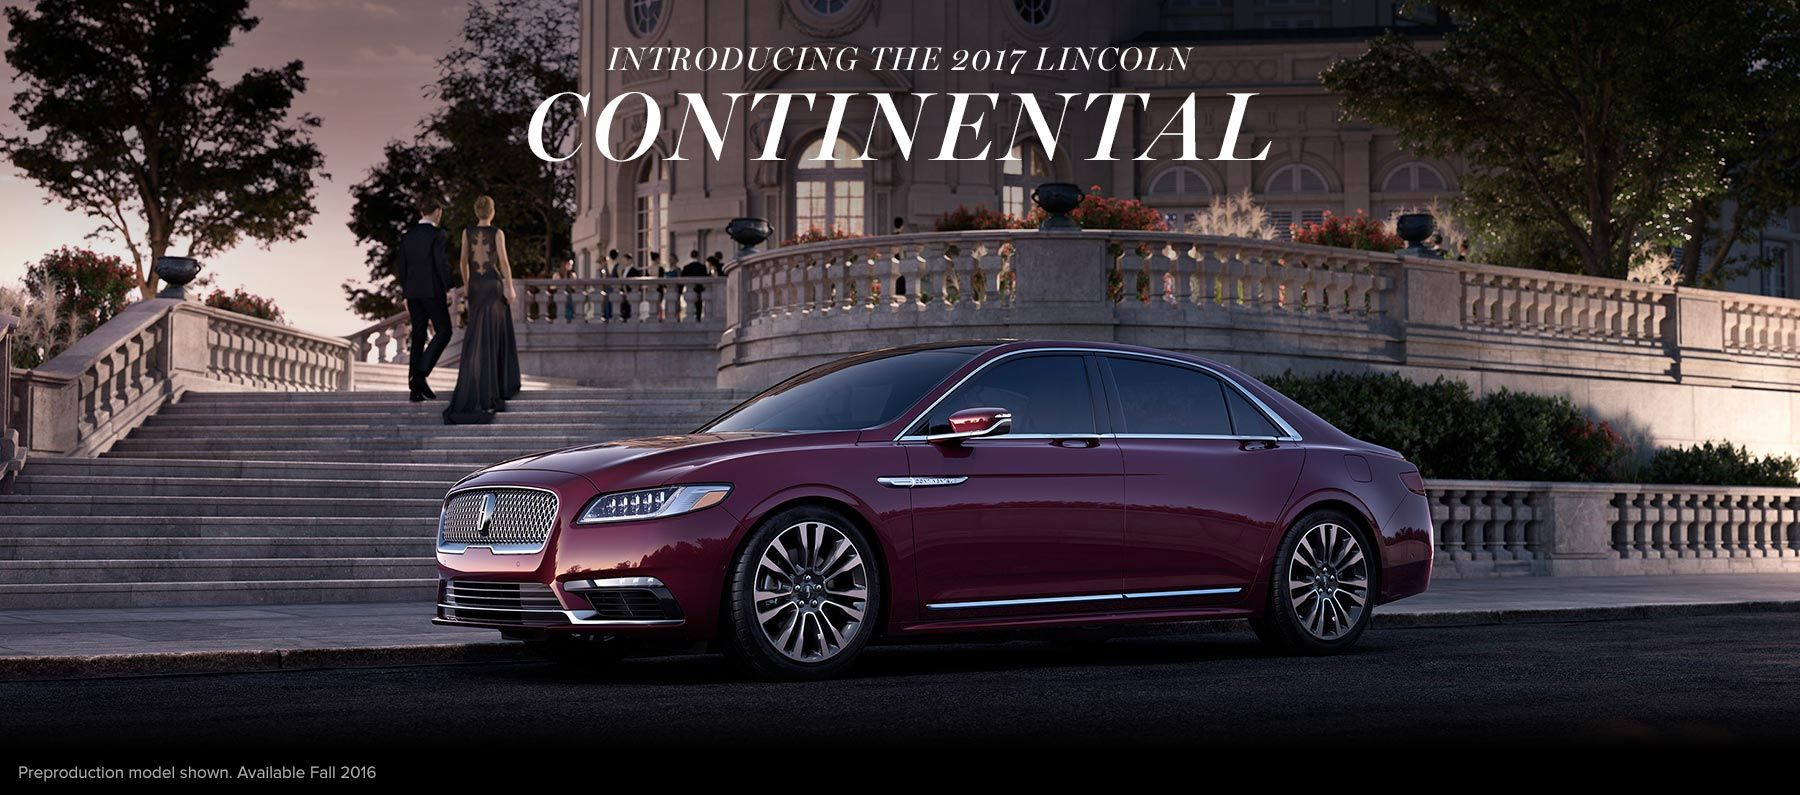 2017 Lincoln Continental wealth Pinterest